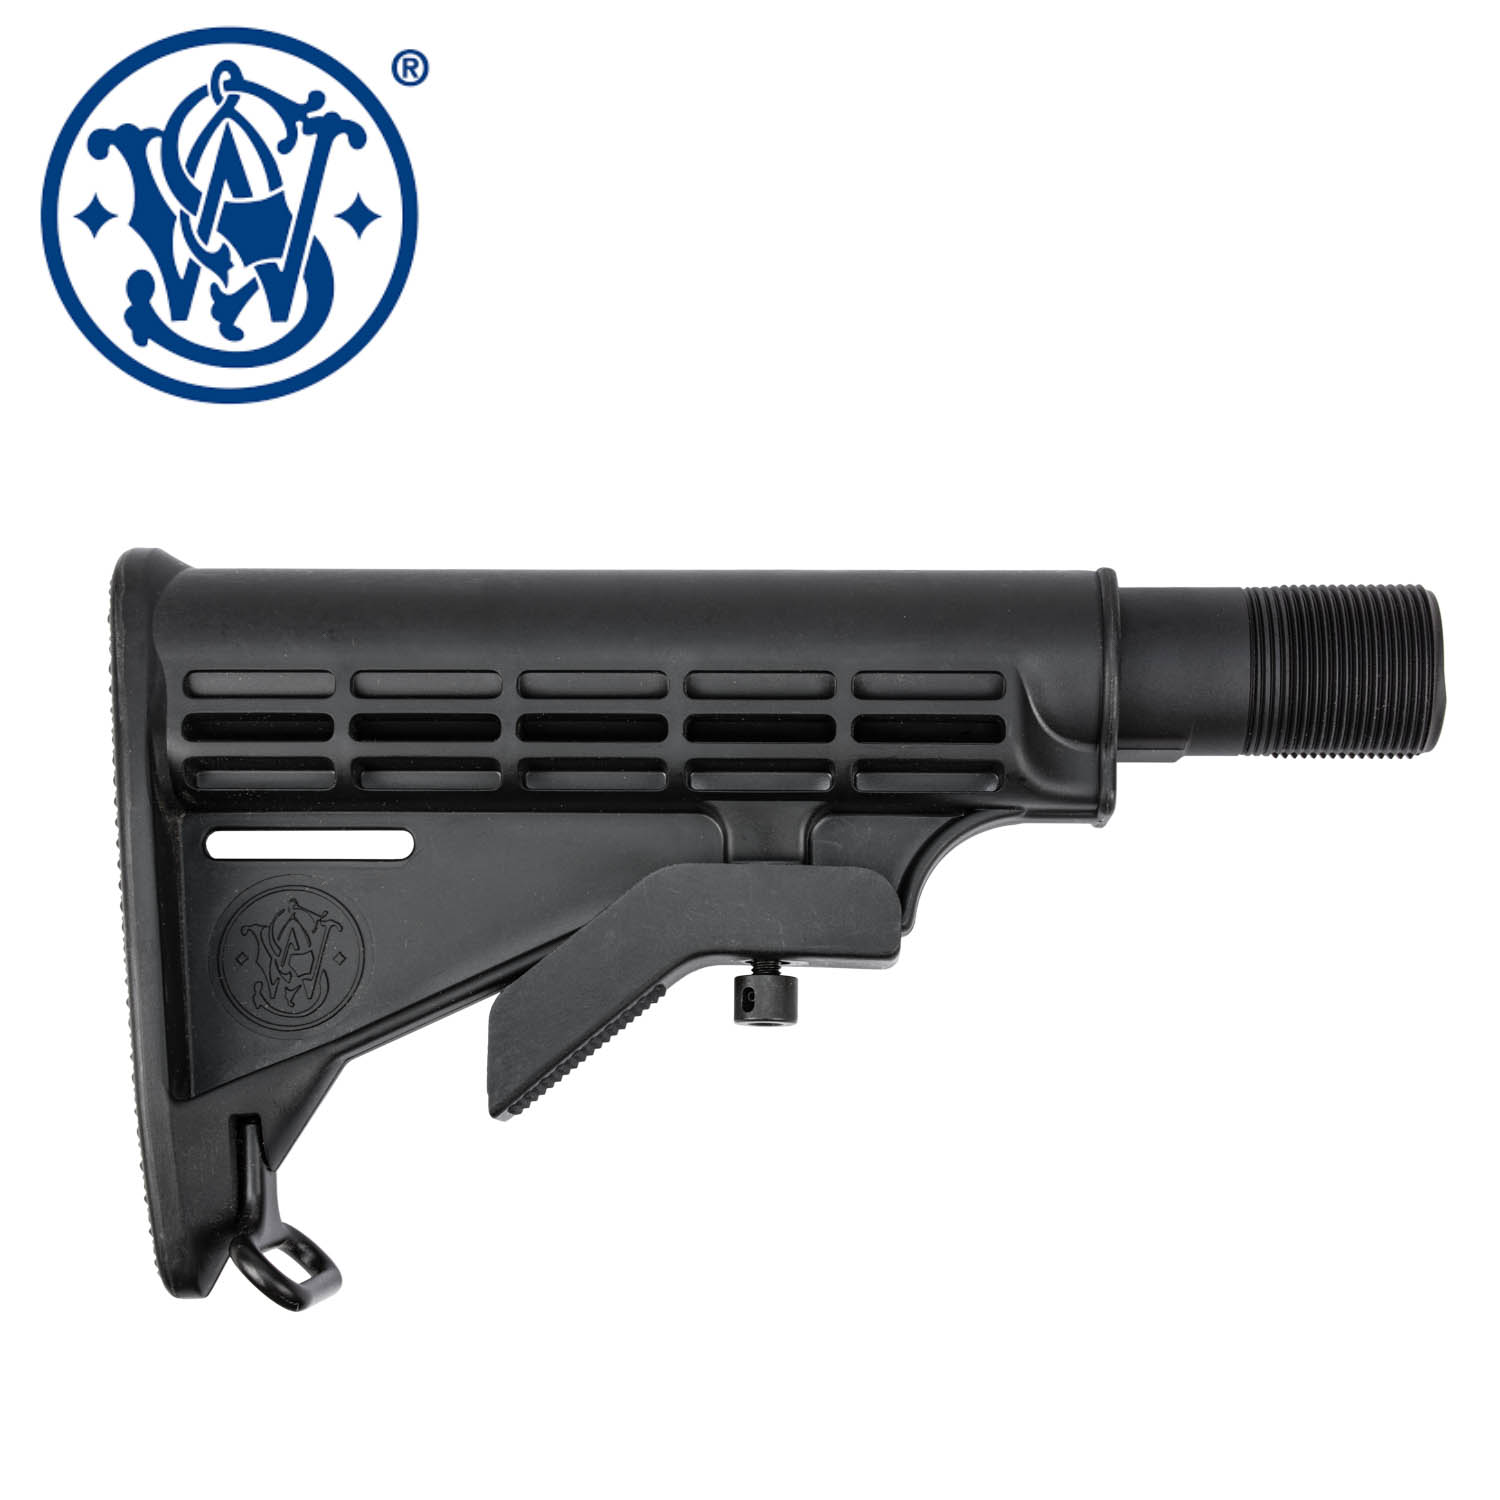 Smith Wesson M P15 Adjustable Buttstock 6 Position Mgw